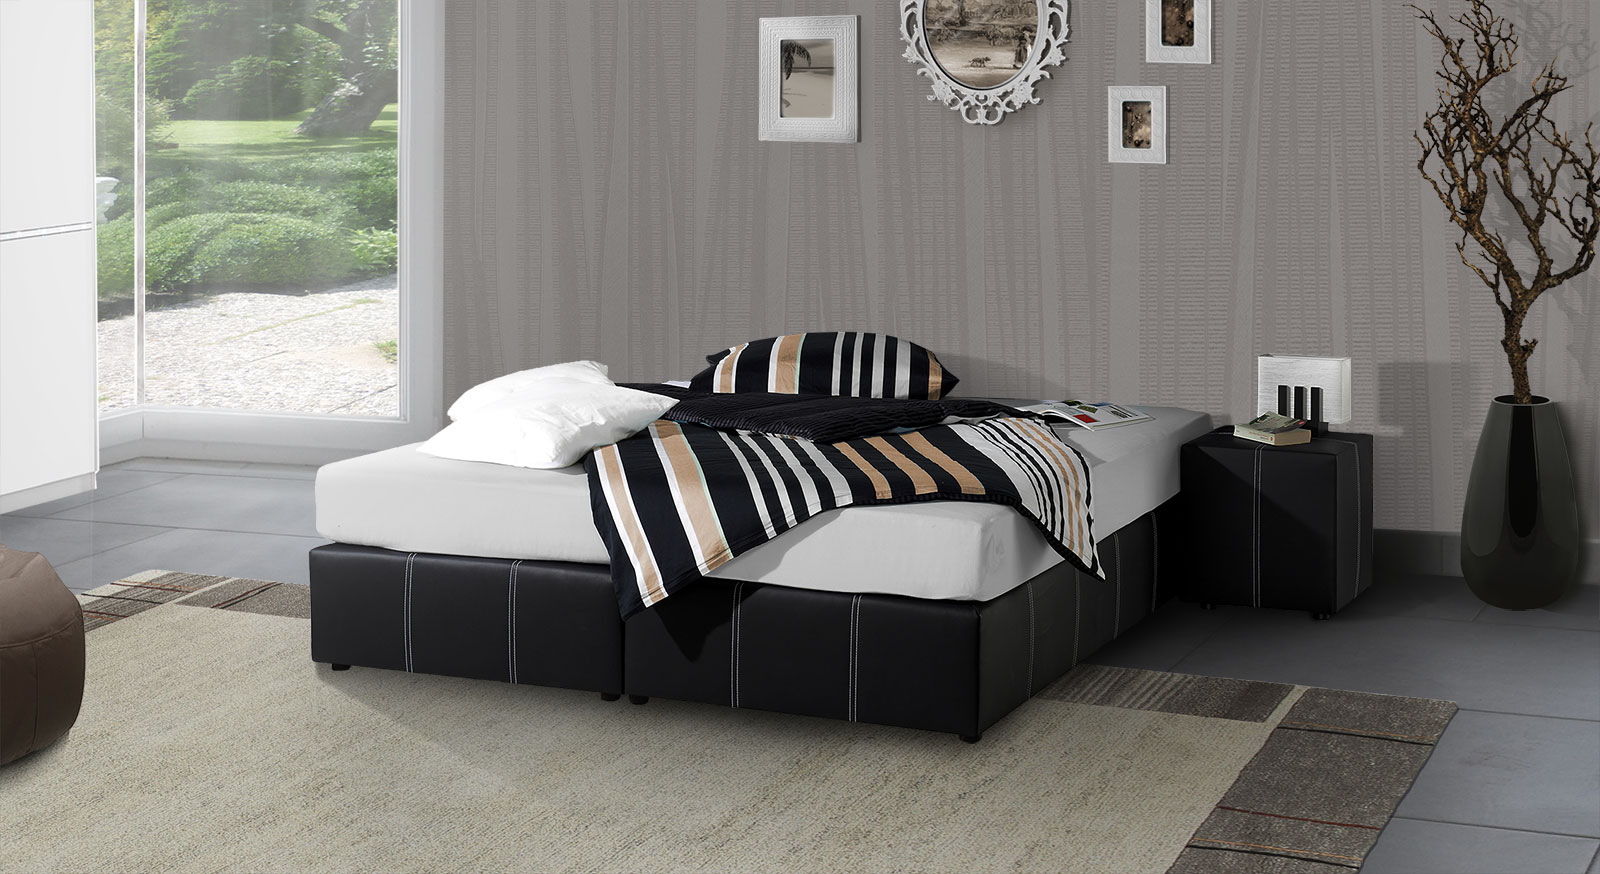 boxspringbett ohne r ckenlehne in schwarz weiss athen. Black Bedroom Furniture Sets. Home Design Ideas